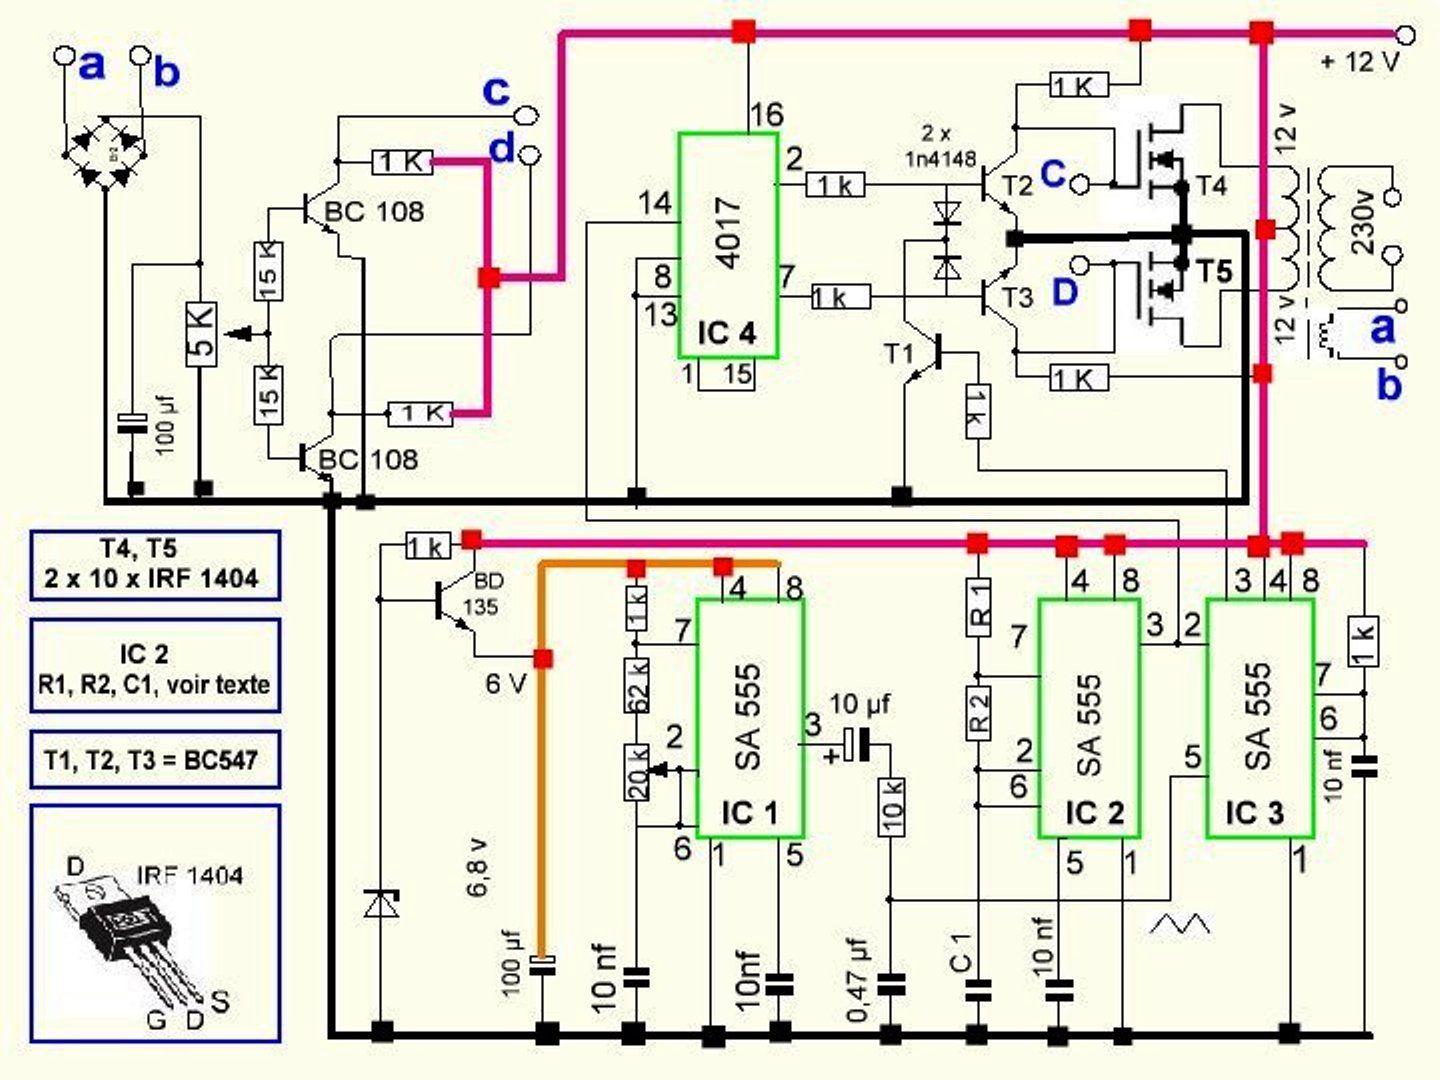 300 Watts PWM Controlled, Pure Sine Wave Inverter | Homemade Circuit  Projects | Circuit diagram, Sine wave, Circuit projects | Pure Sine Wave Inverter Circuit Diagrams Free Download |  | Pinterest